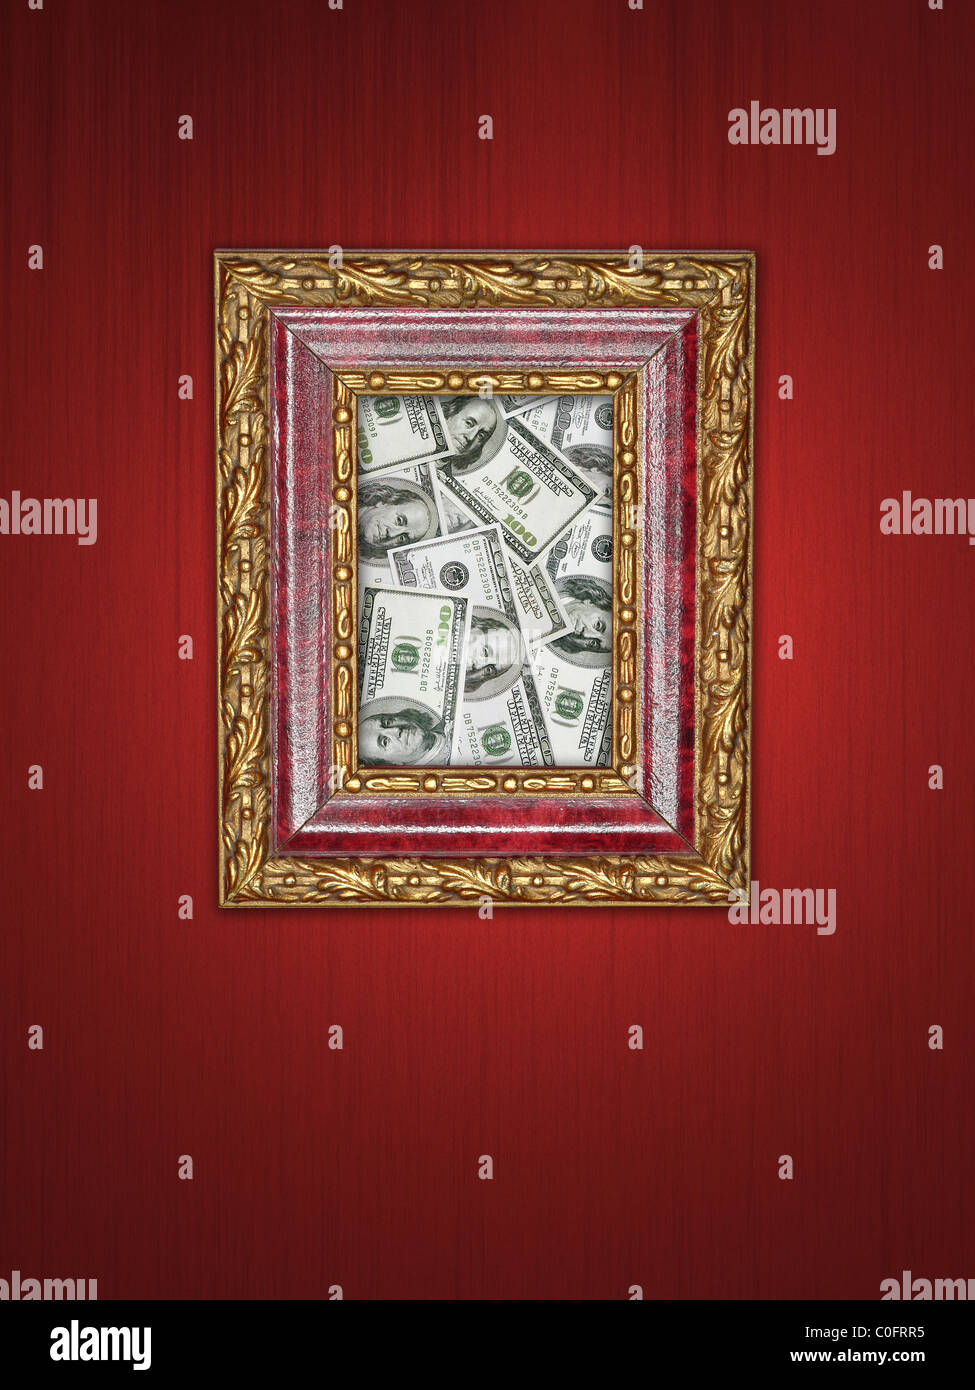 Pile of one hundred dollar banknotes in wooden picture frame with golden ornaments hanging on purple wall - Stock Image